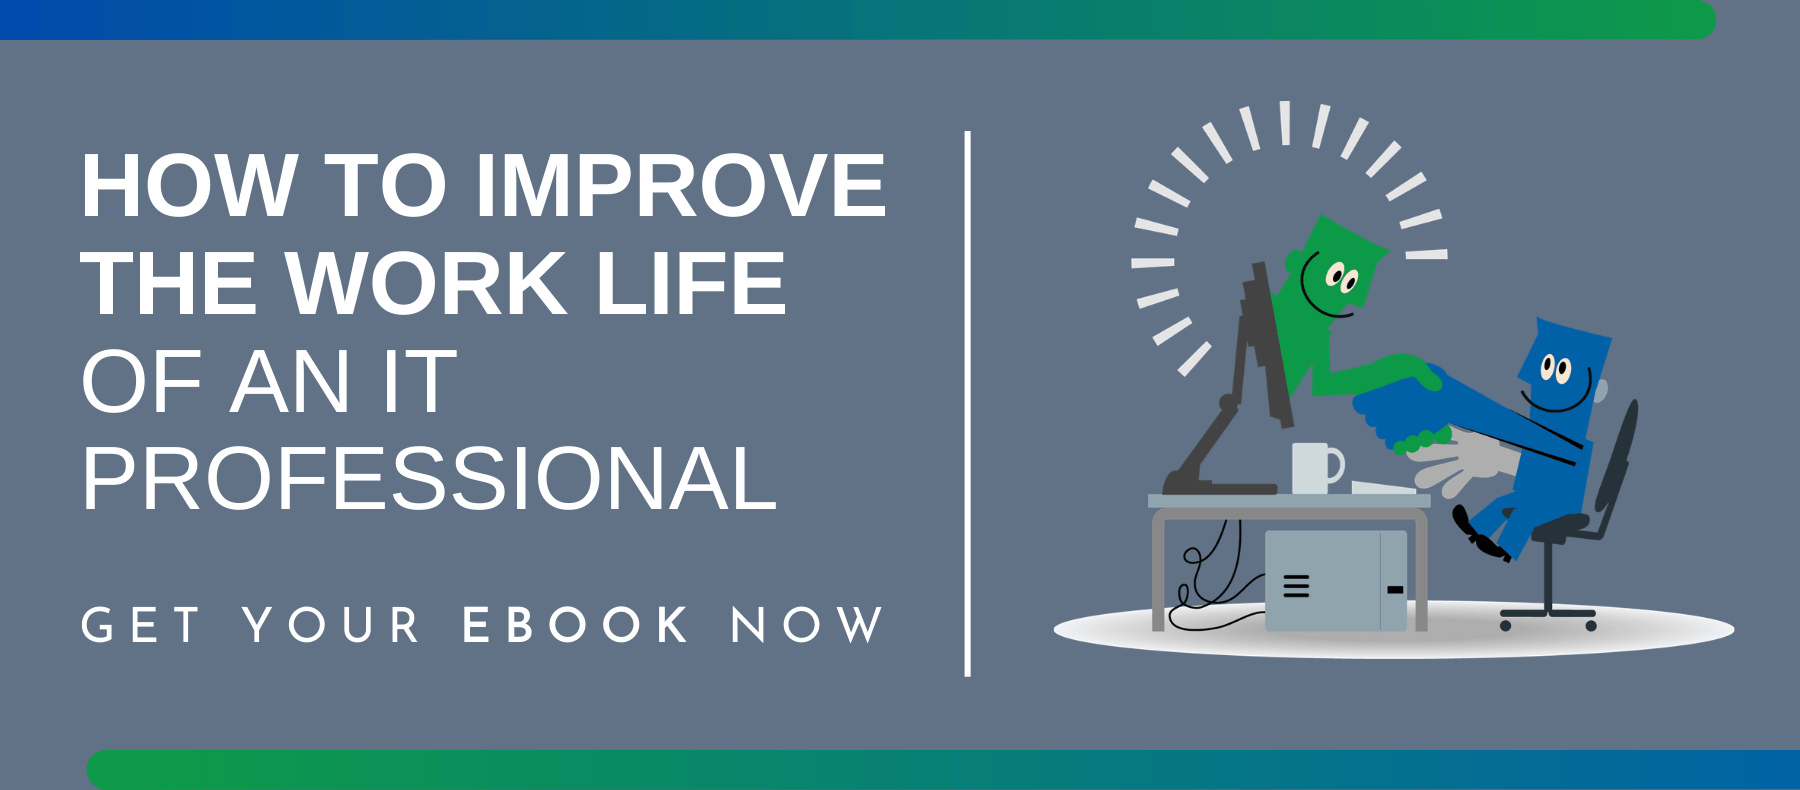 How to Improve the Work-Life of an IT Professional